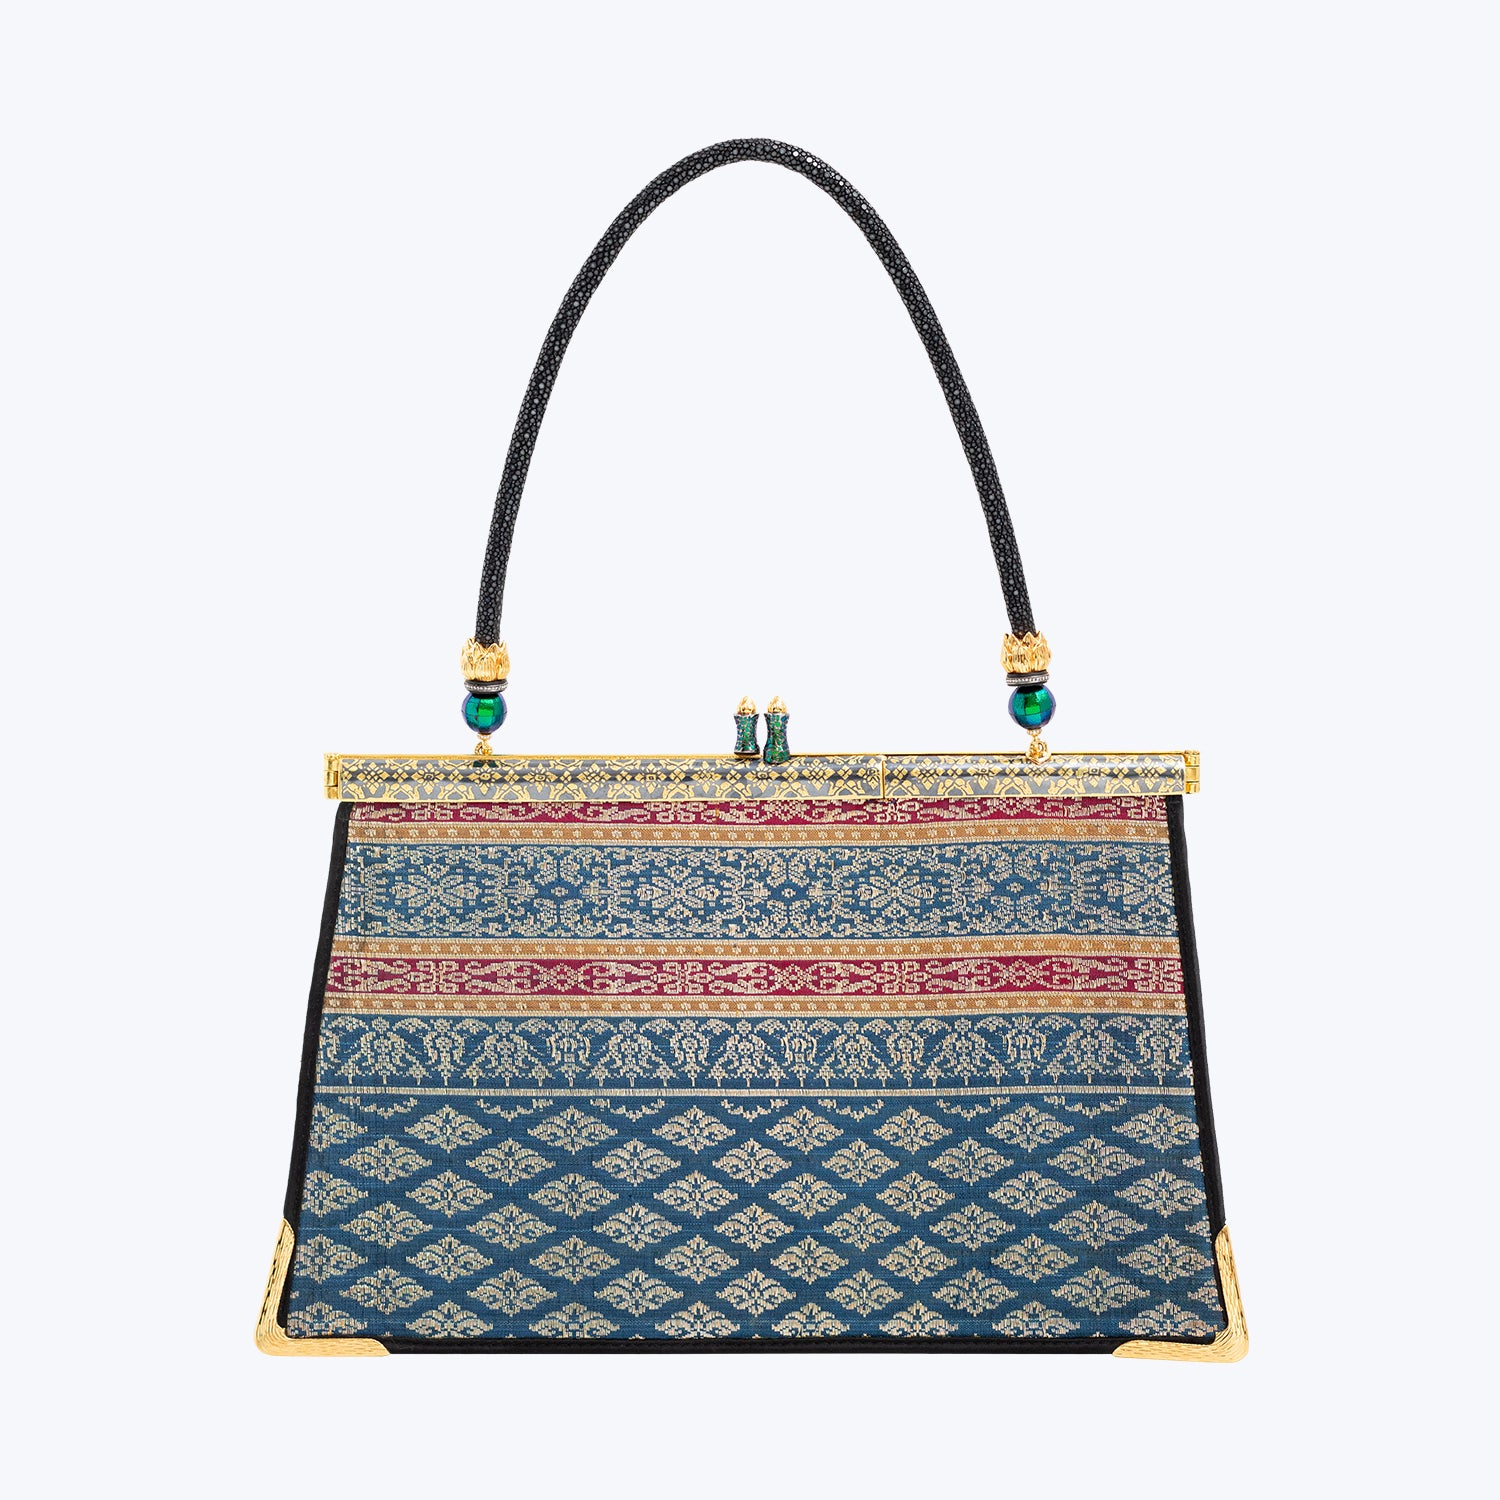 Woven Jewelled Silapacheep Handbag with Gold Niello Frame